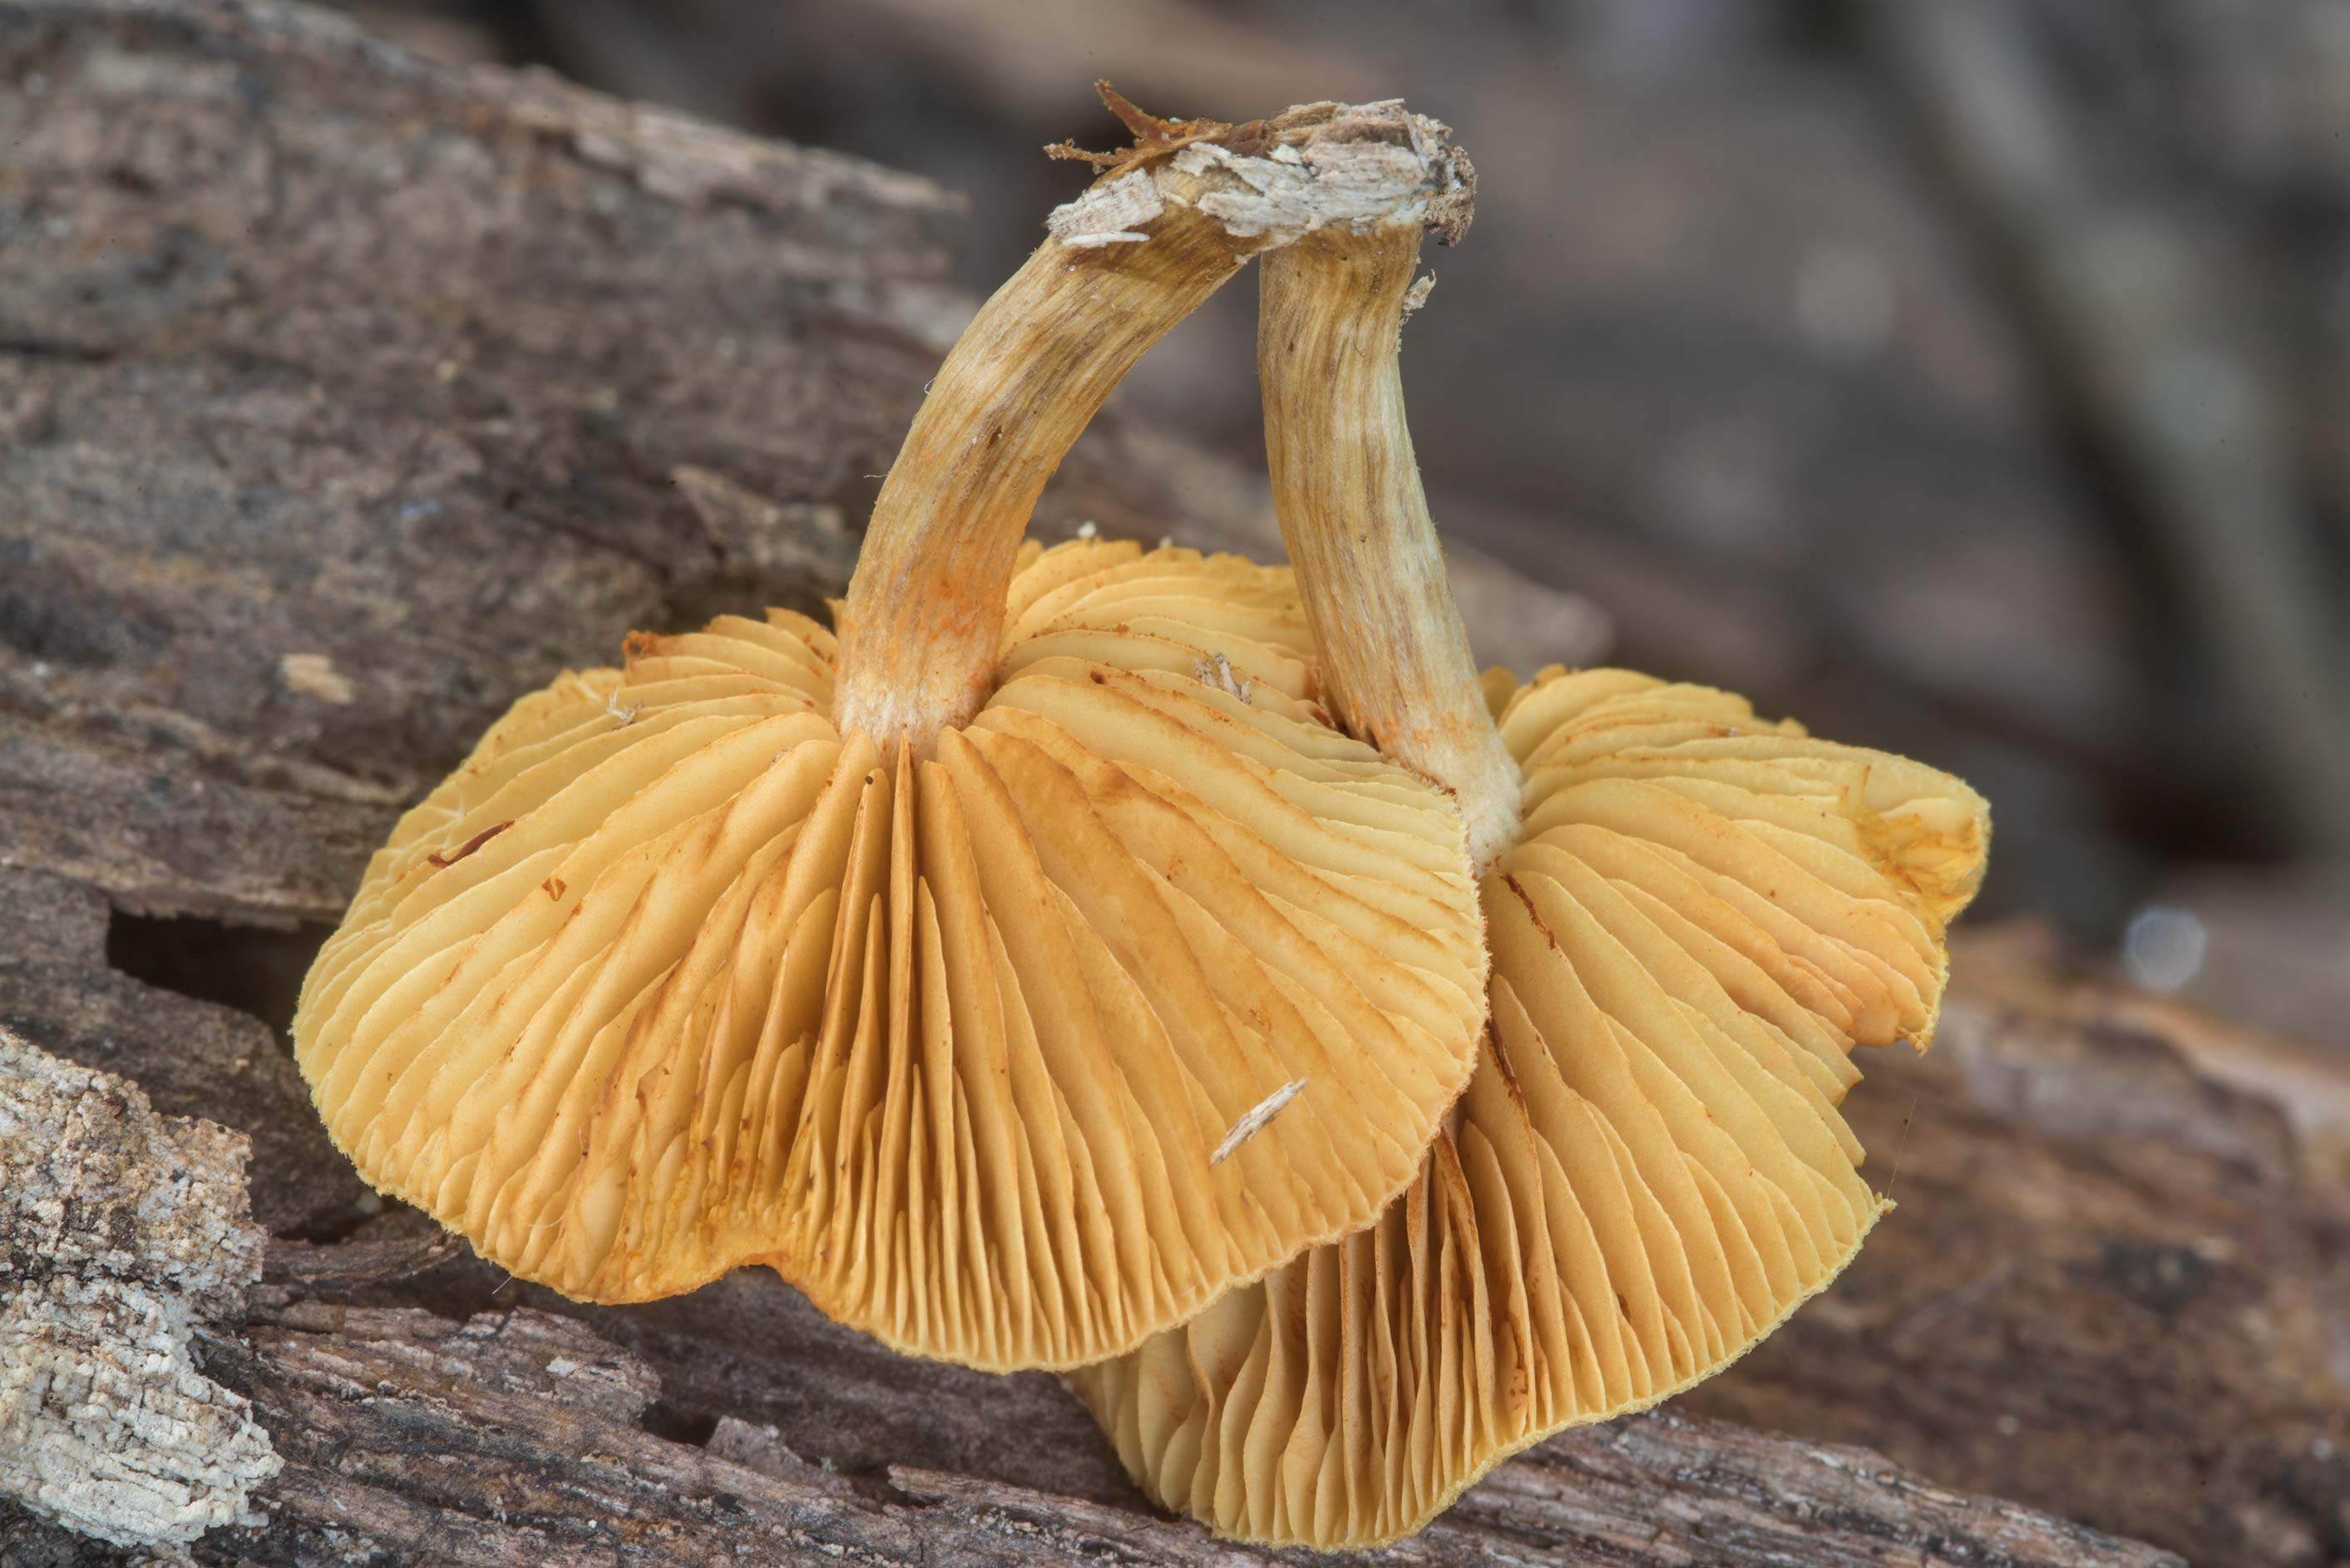 Gills of Gymnopilus mushrooms growing on a log in Lick Creek Park. College Station, Texas